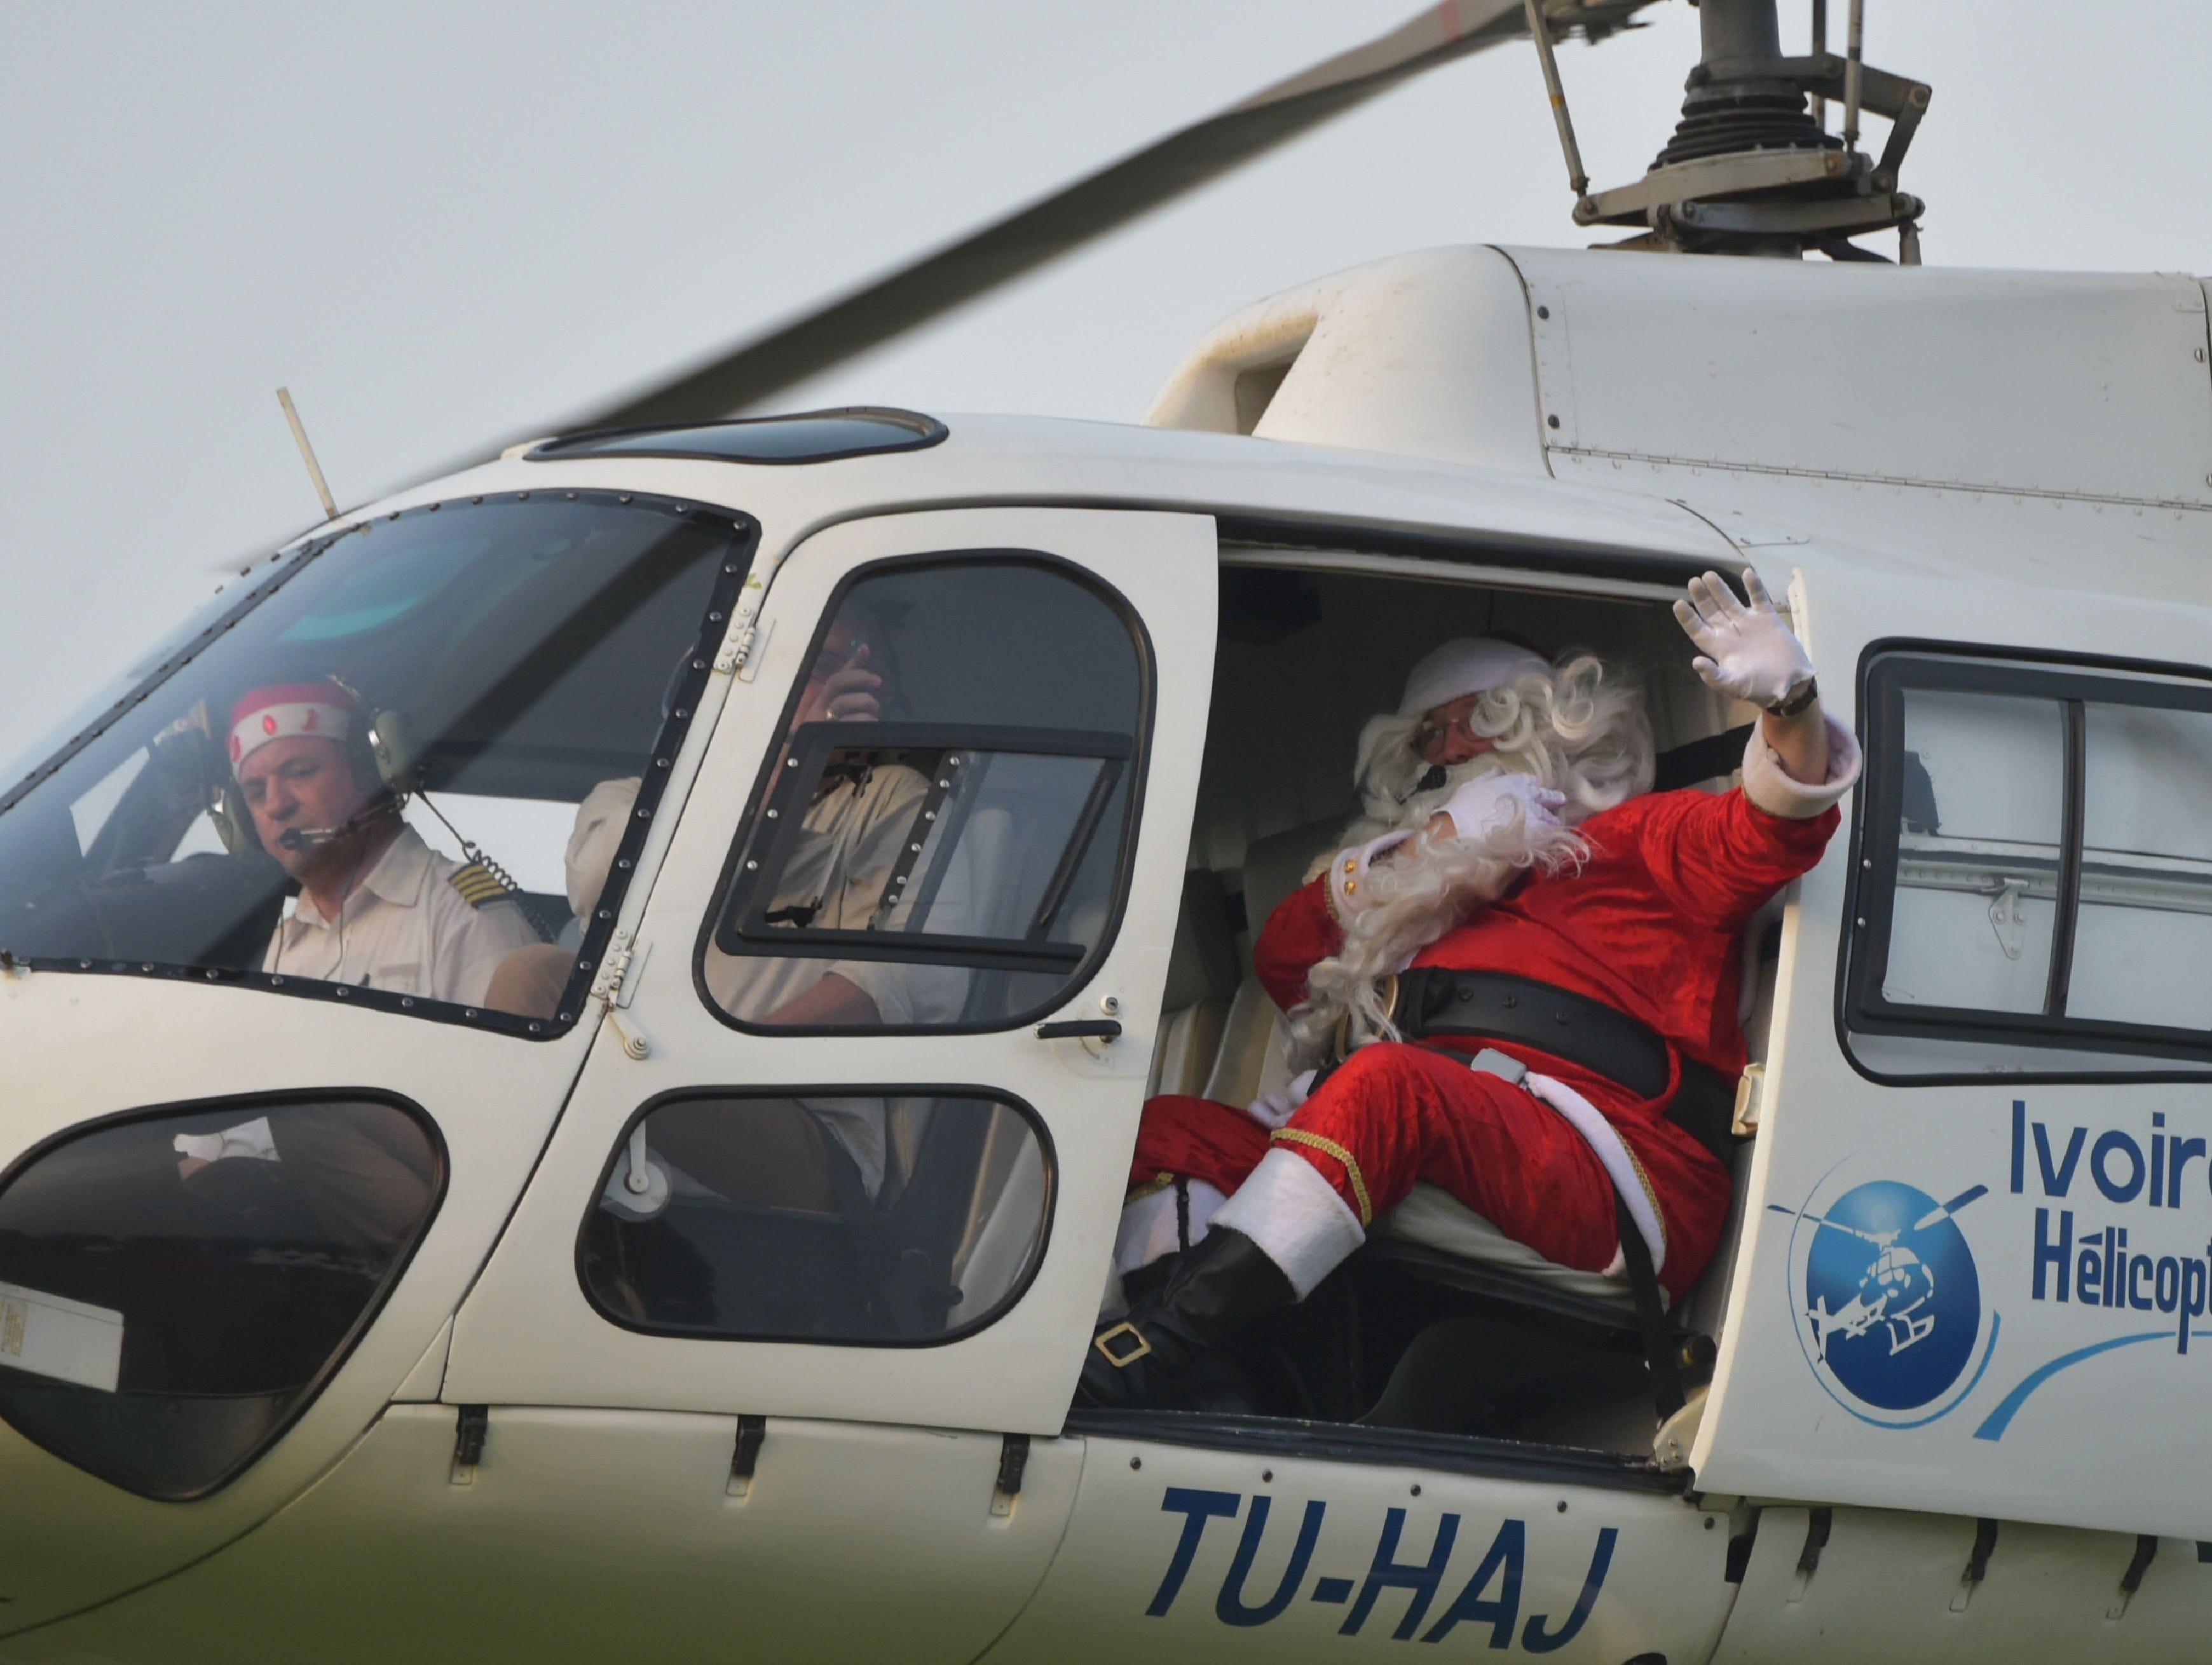 A man dressed as Santa Claus wave from a helicopter as he arrives at the presidential palace in Abidjan on Dec. 22, 2018, during a Christmas event organized by the Children of Africa Foundation.